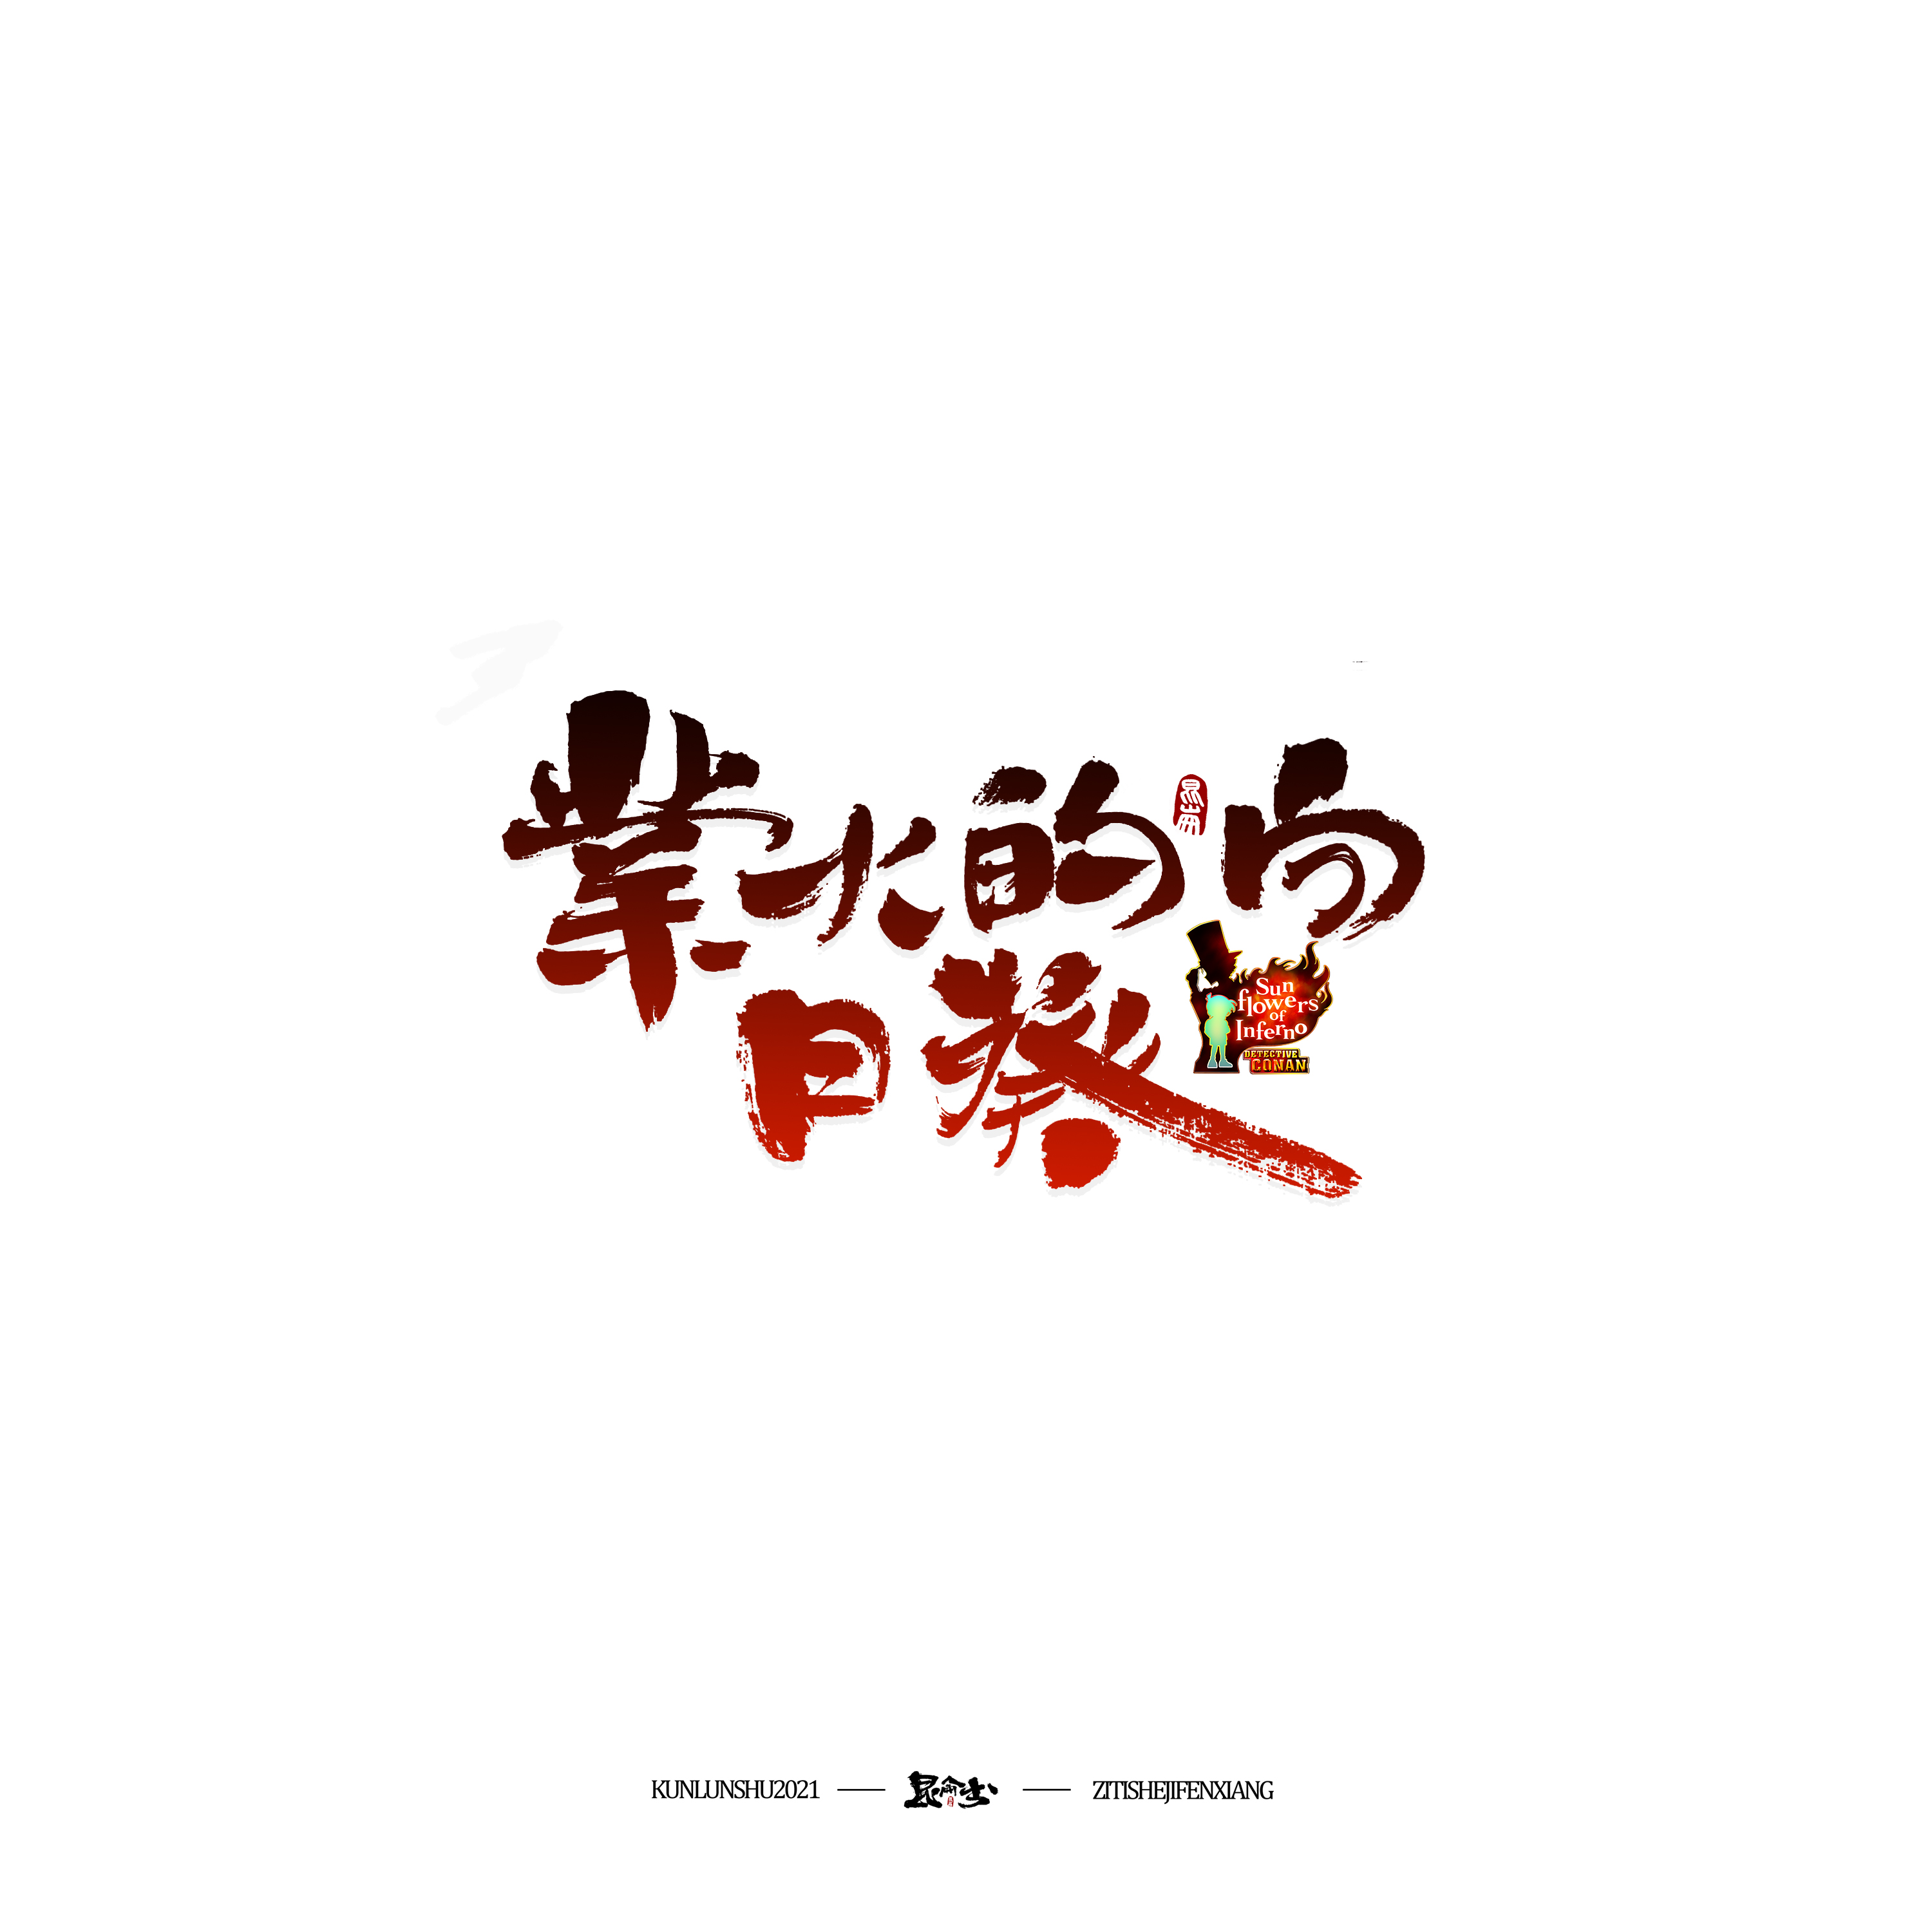 24P Collection of the latest Chinese font design schemes in 2021 #.26